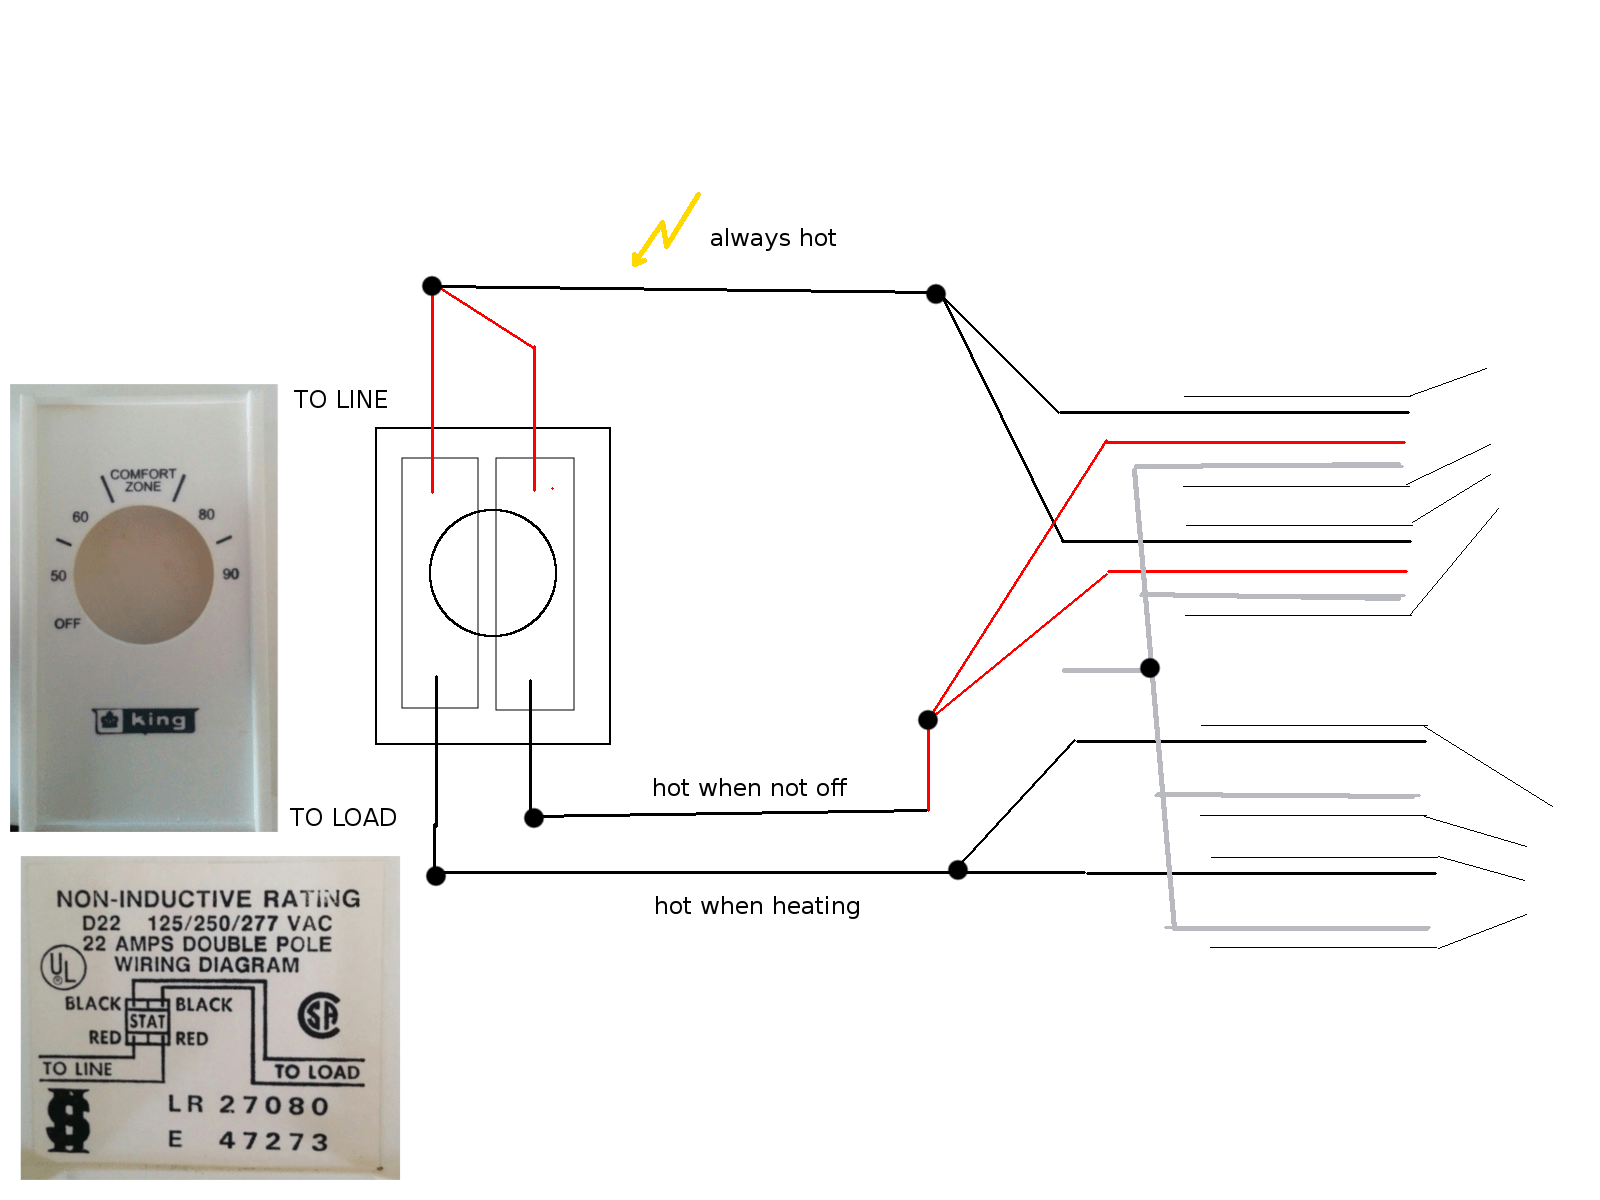 hight resolution of wiring installing double pole line voltage thermostat home rh diy stackexchange com double pole contactor wiring diagram double pole single throw rocker